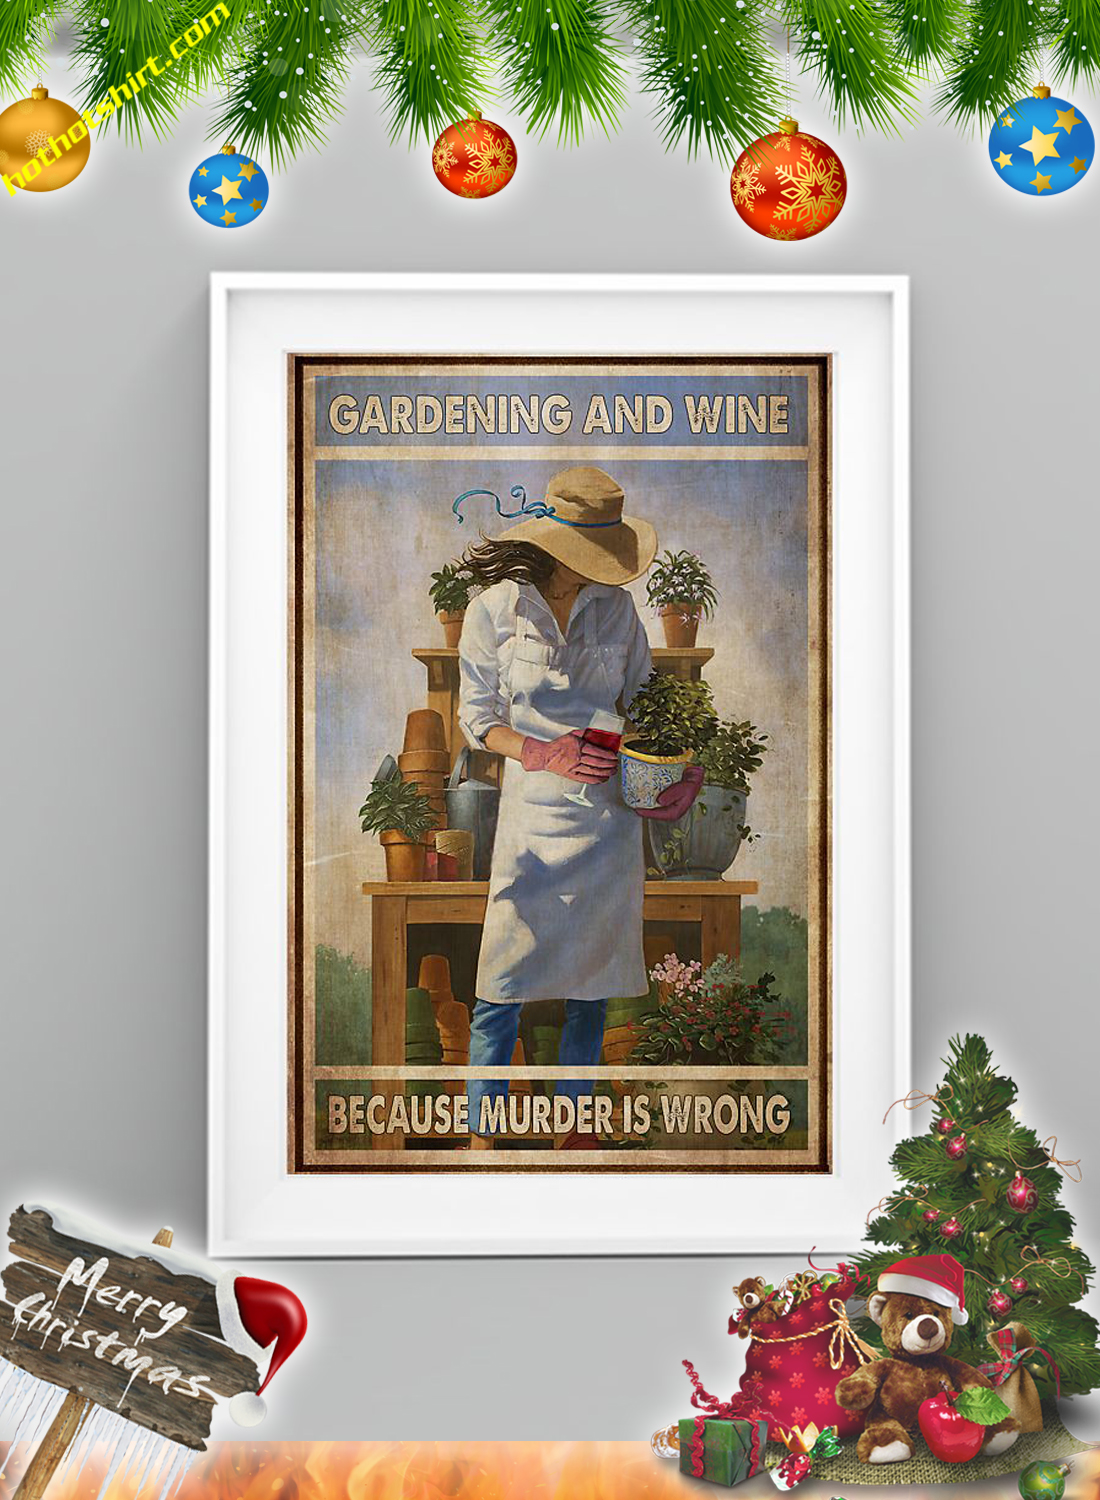 Girl Gardening and wine because murder is wrong poster 2